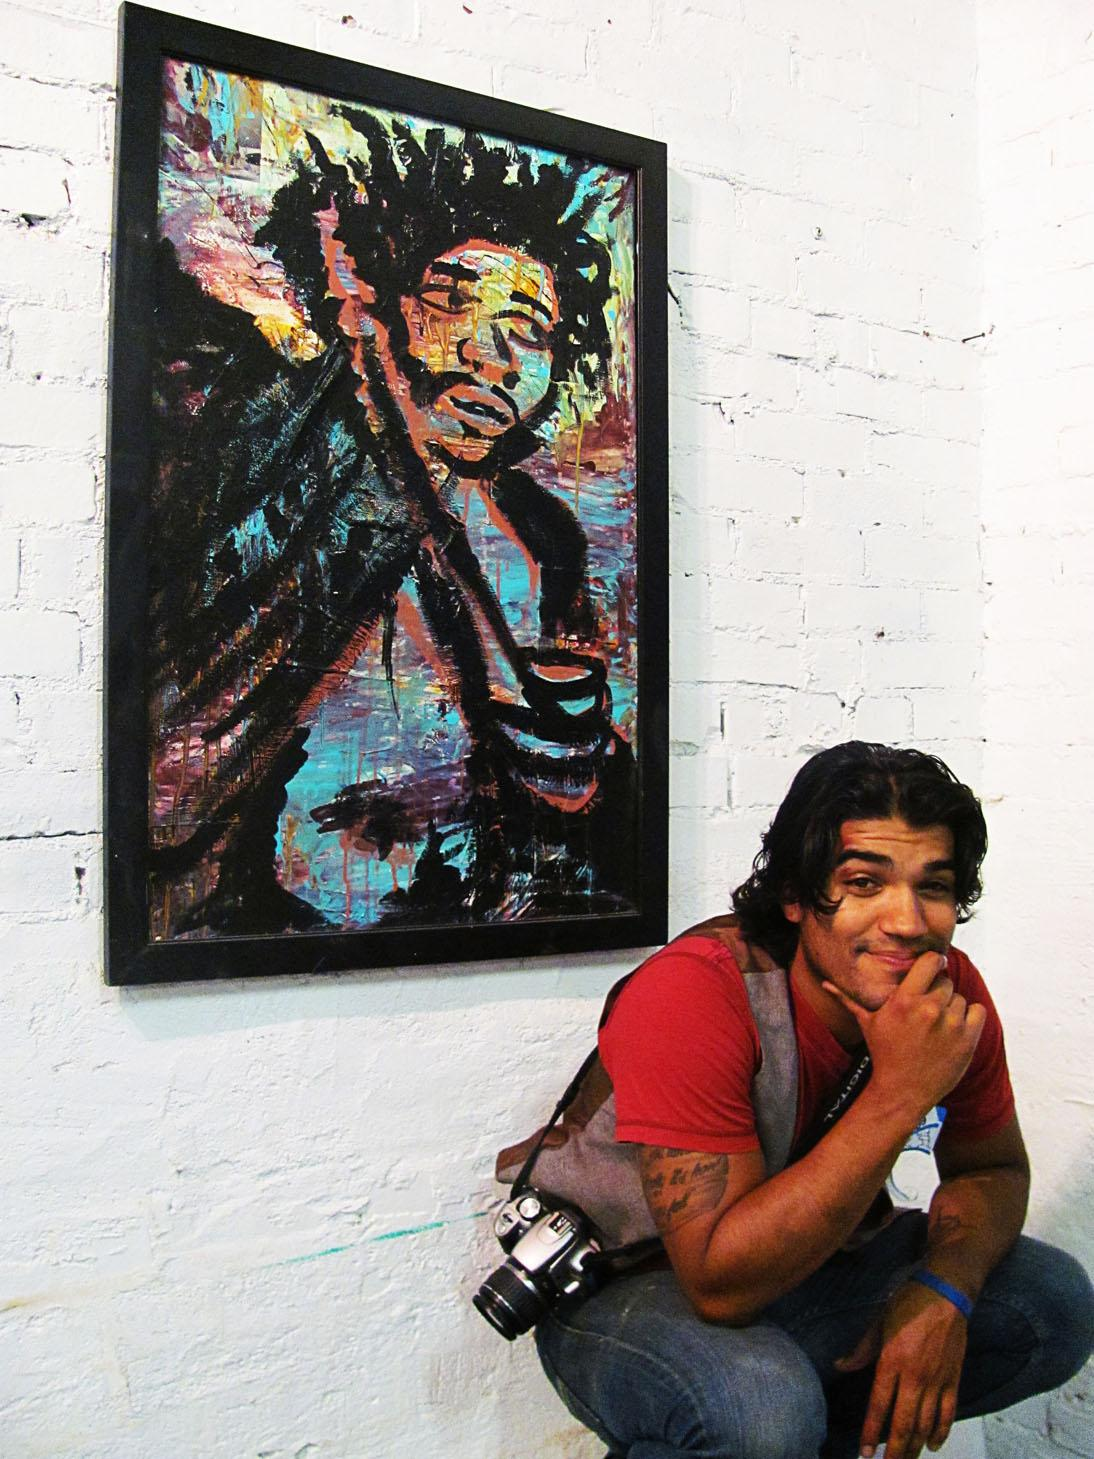 The Journal : Growing art community featured UIS students' work